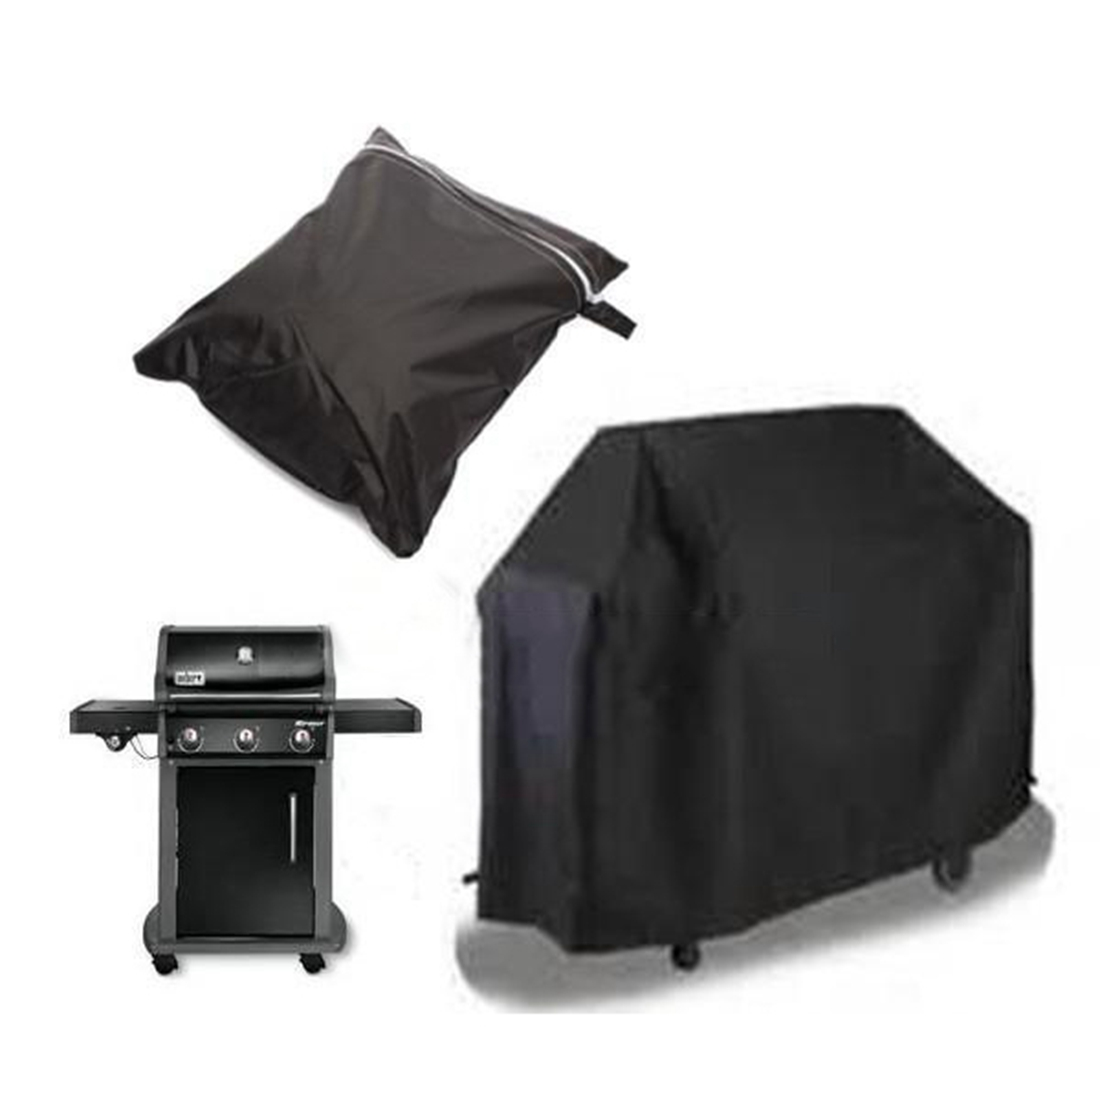 NOCM 100x60x150cm Waterproof BBQ Cover Gas Barbecue Grill Protection Patio Outdoor Indoor Black